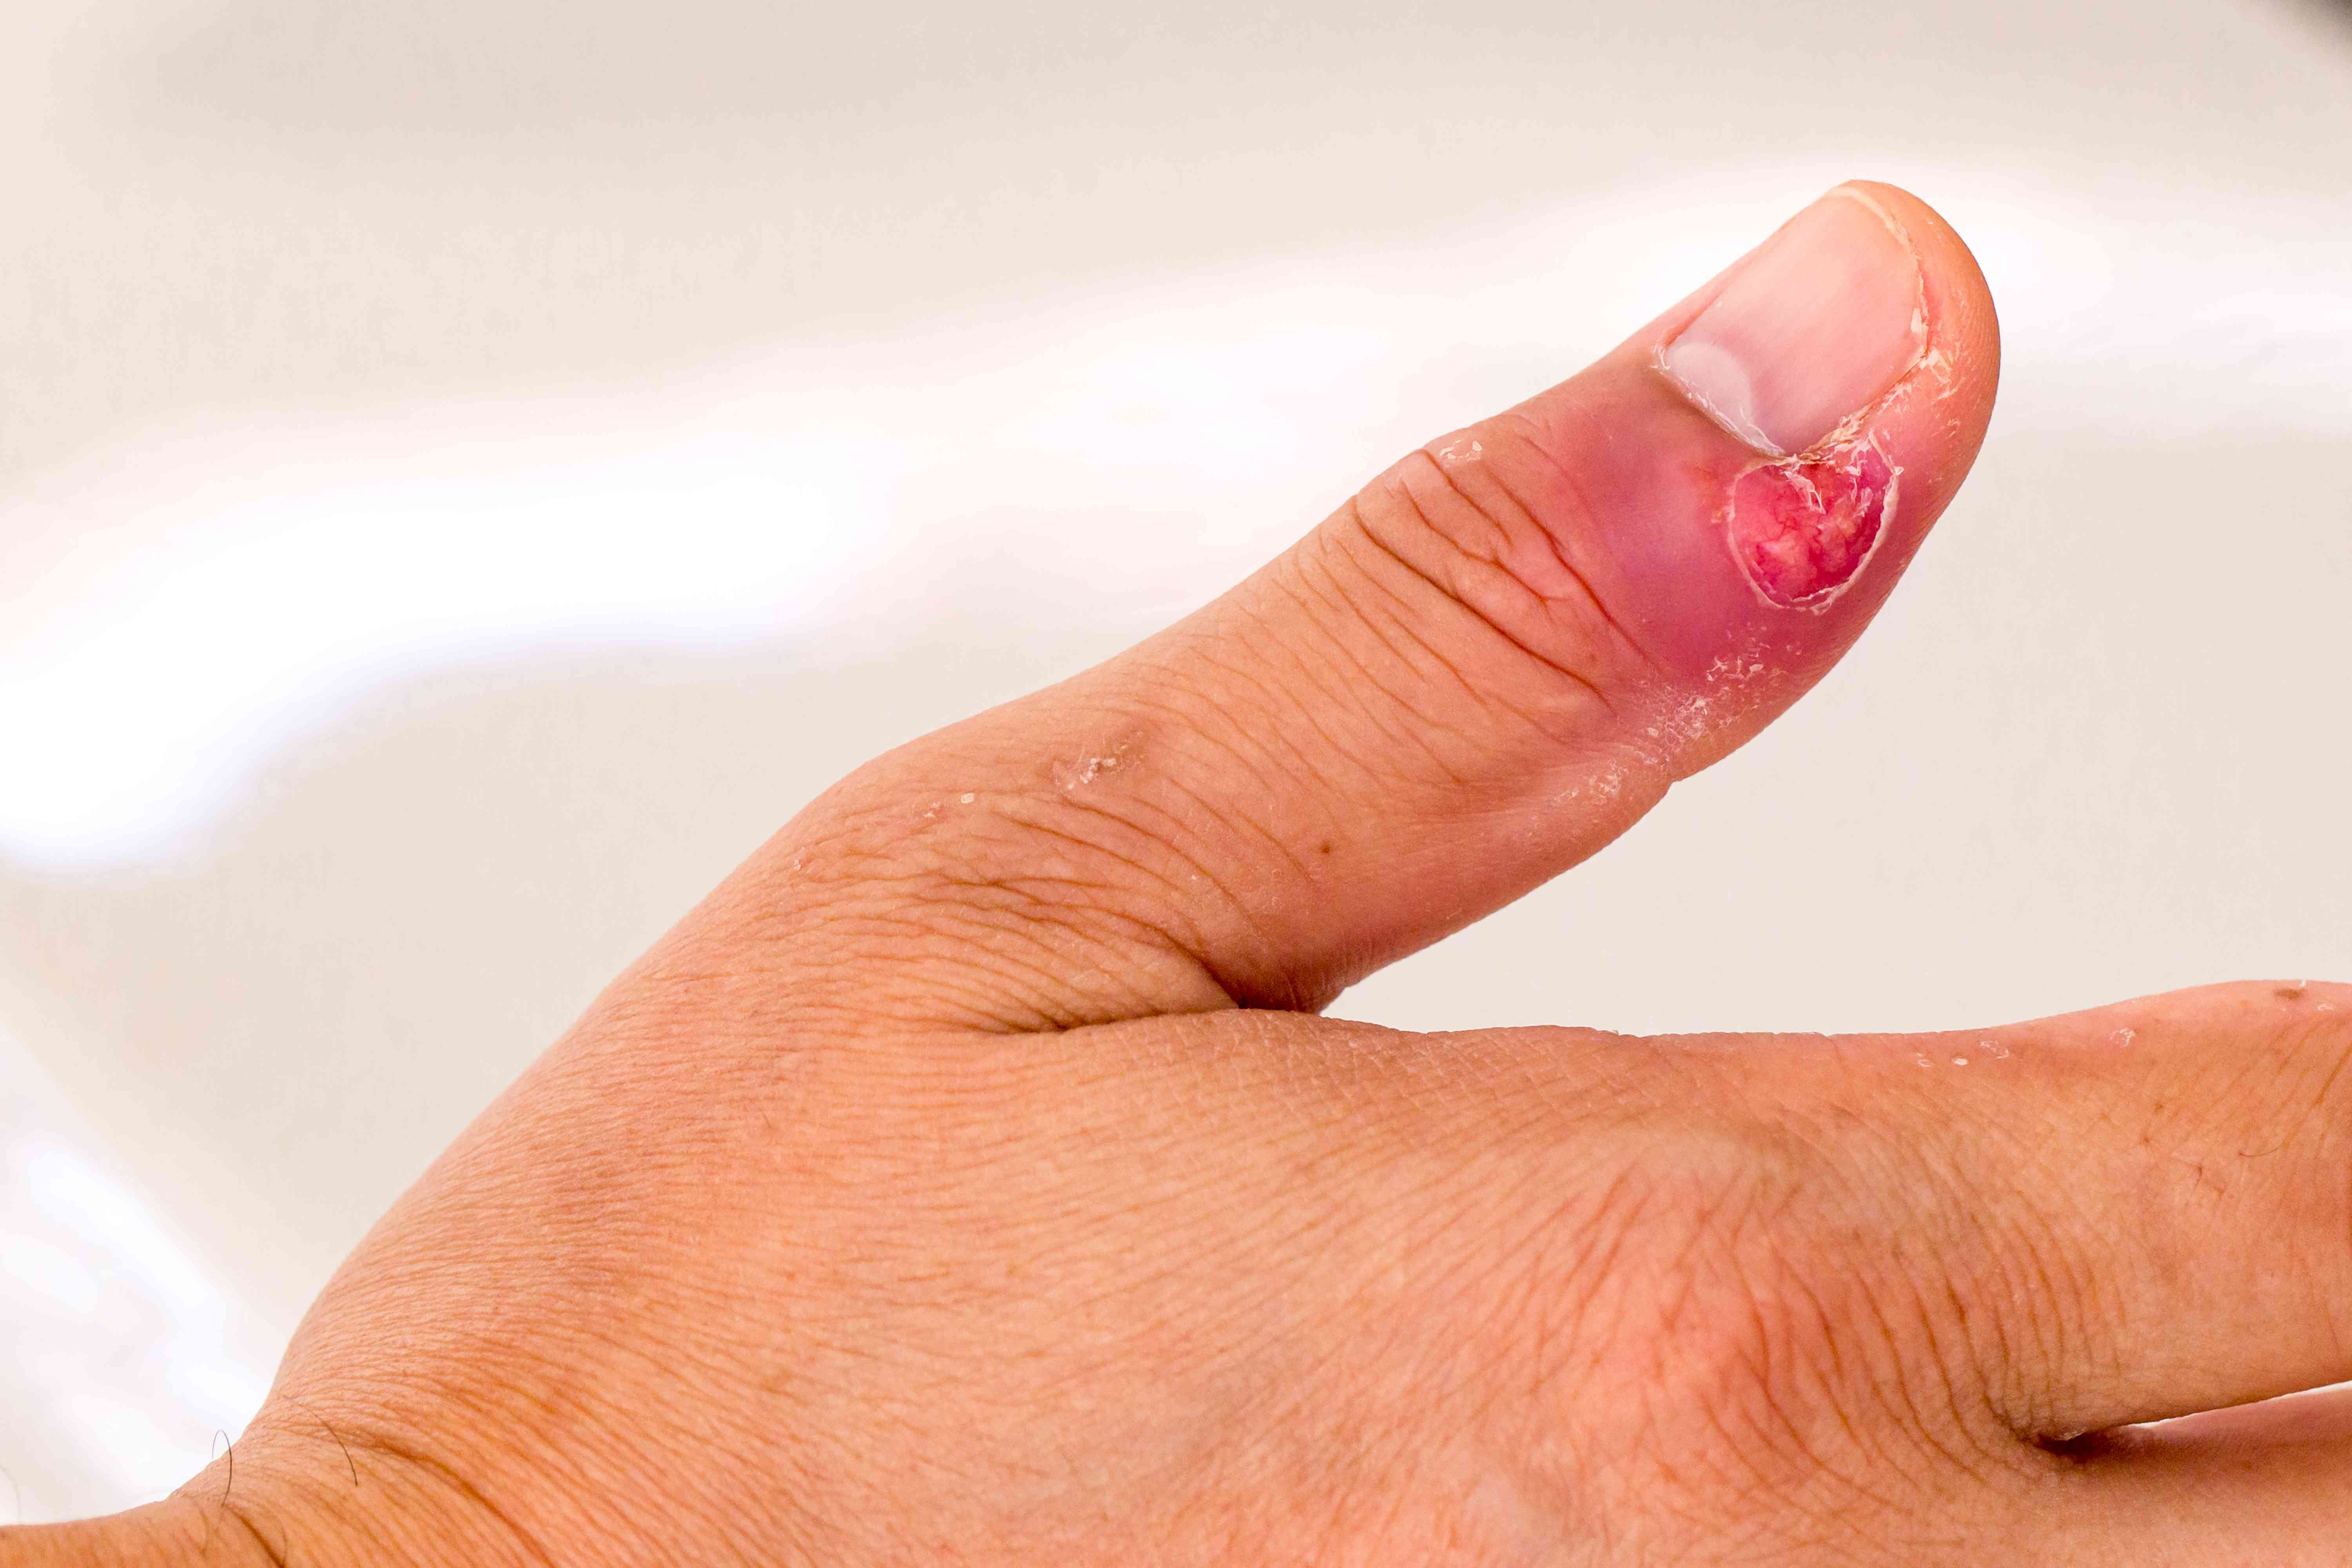 finger infection treatment